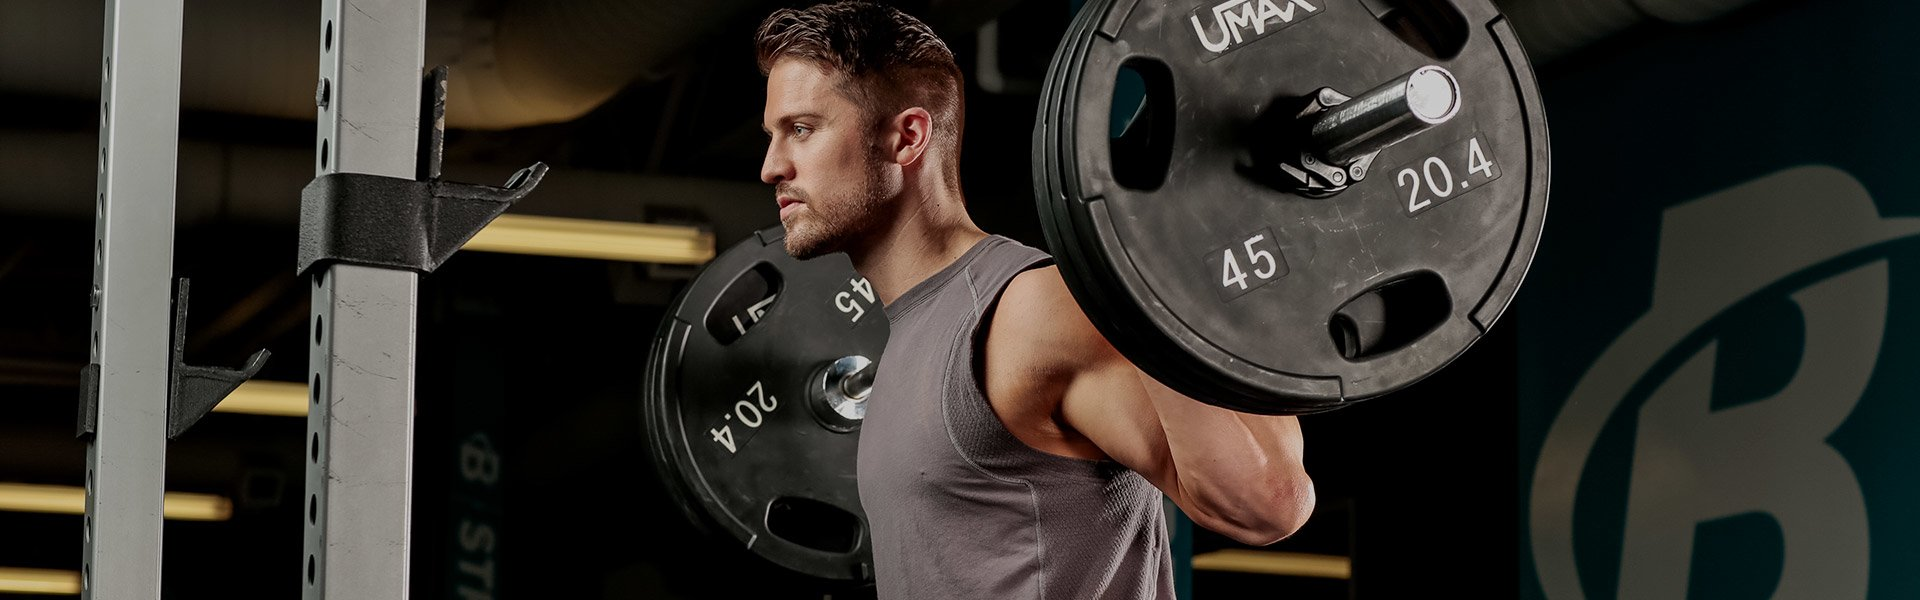 5 Common Squat Mistakes